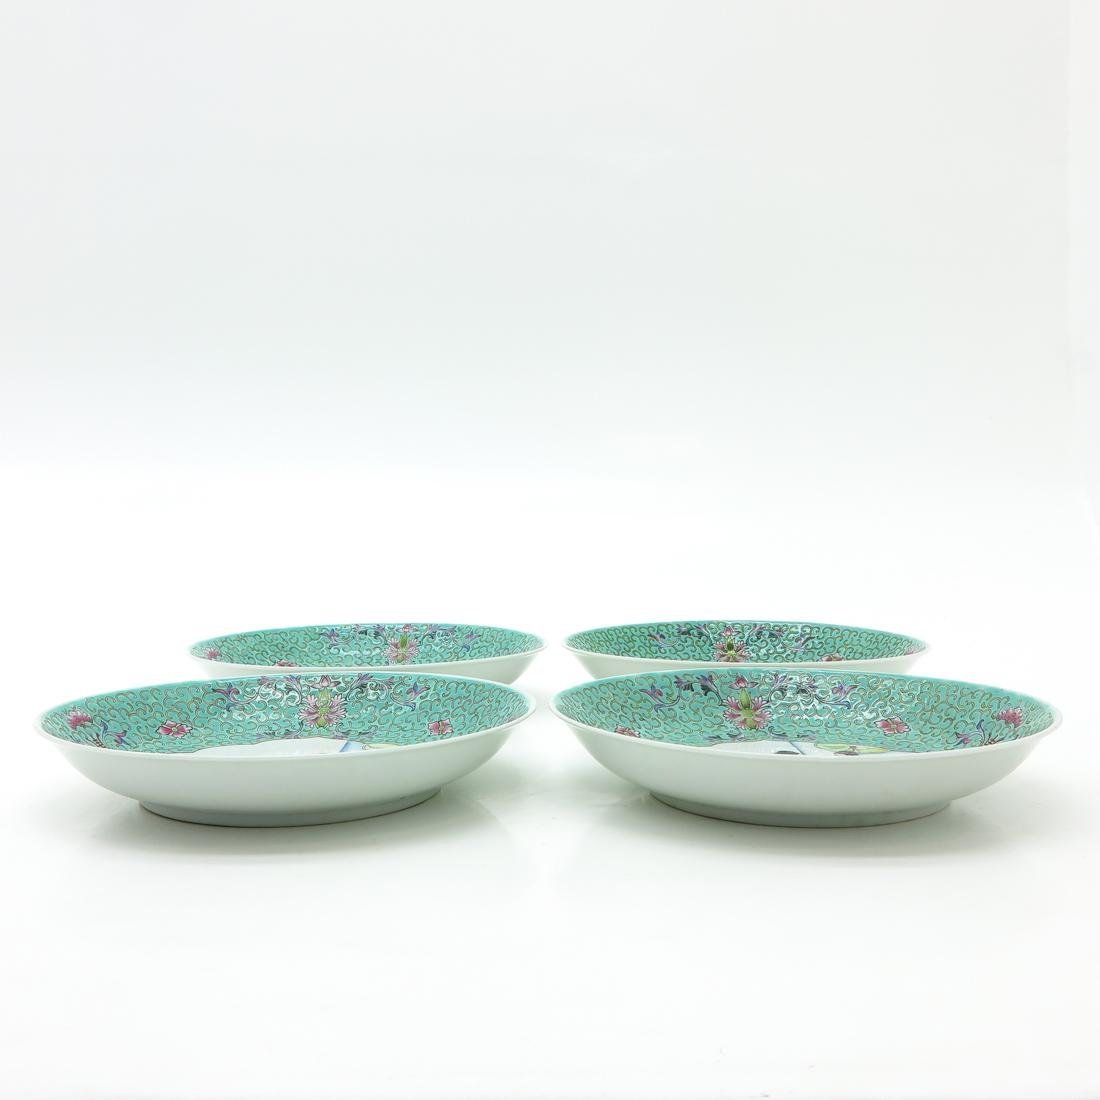 Lot of 4 Plates - 3